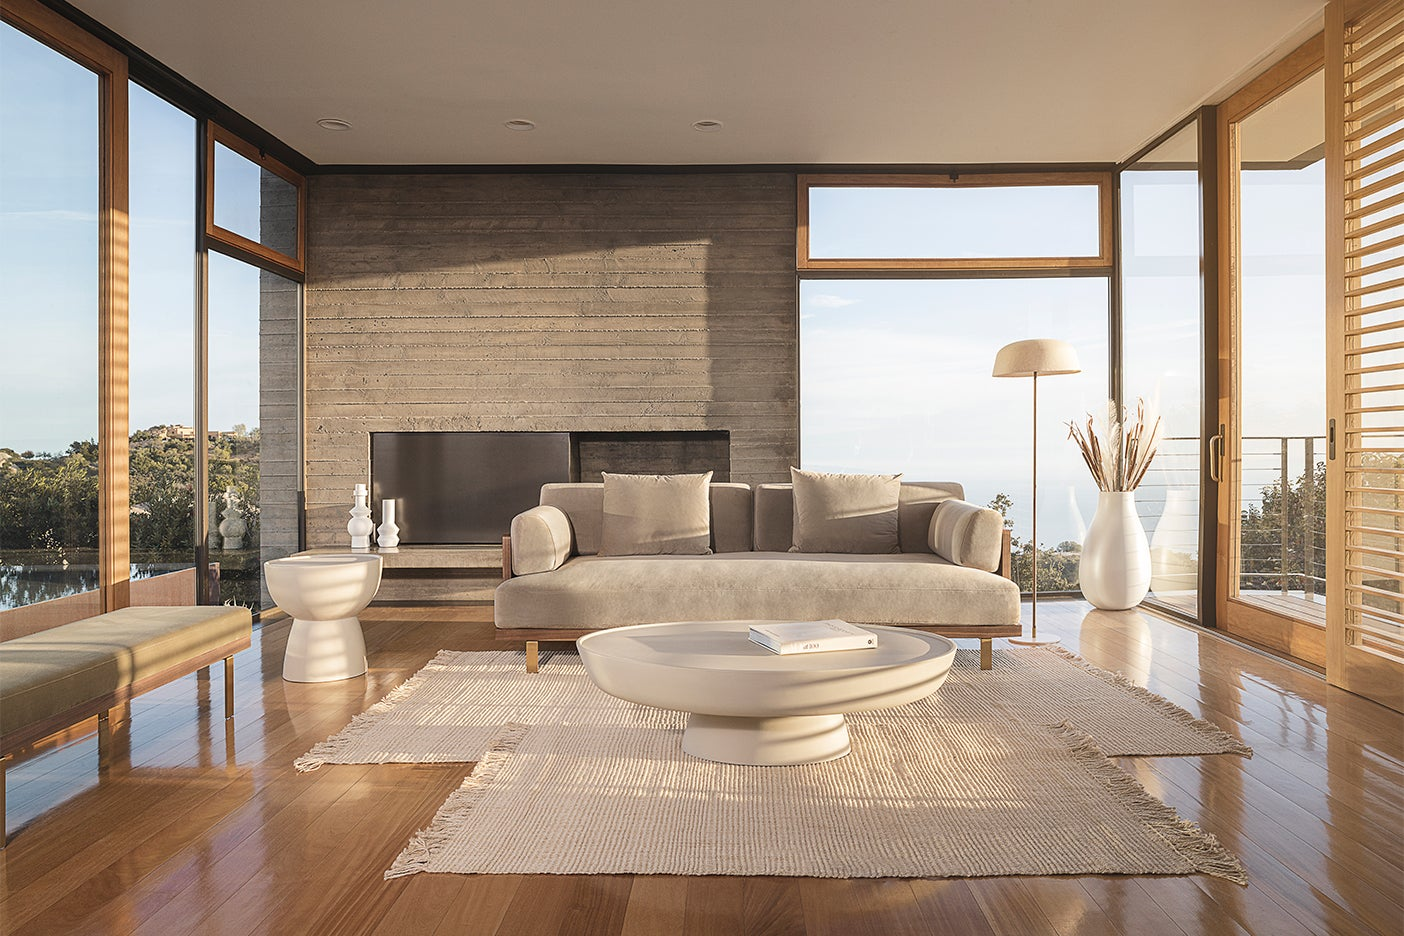 Living room filled with neutral furniture